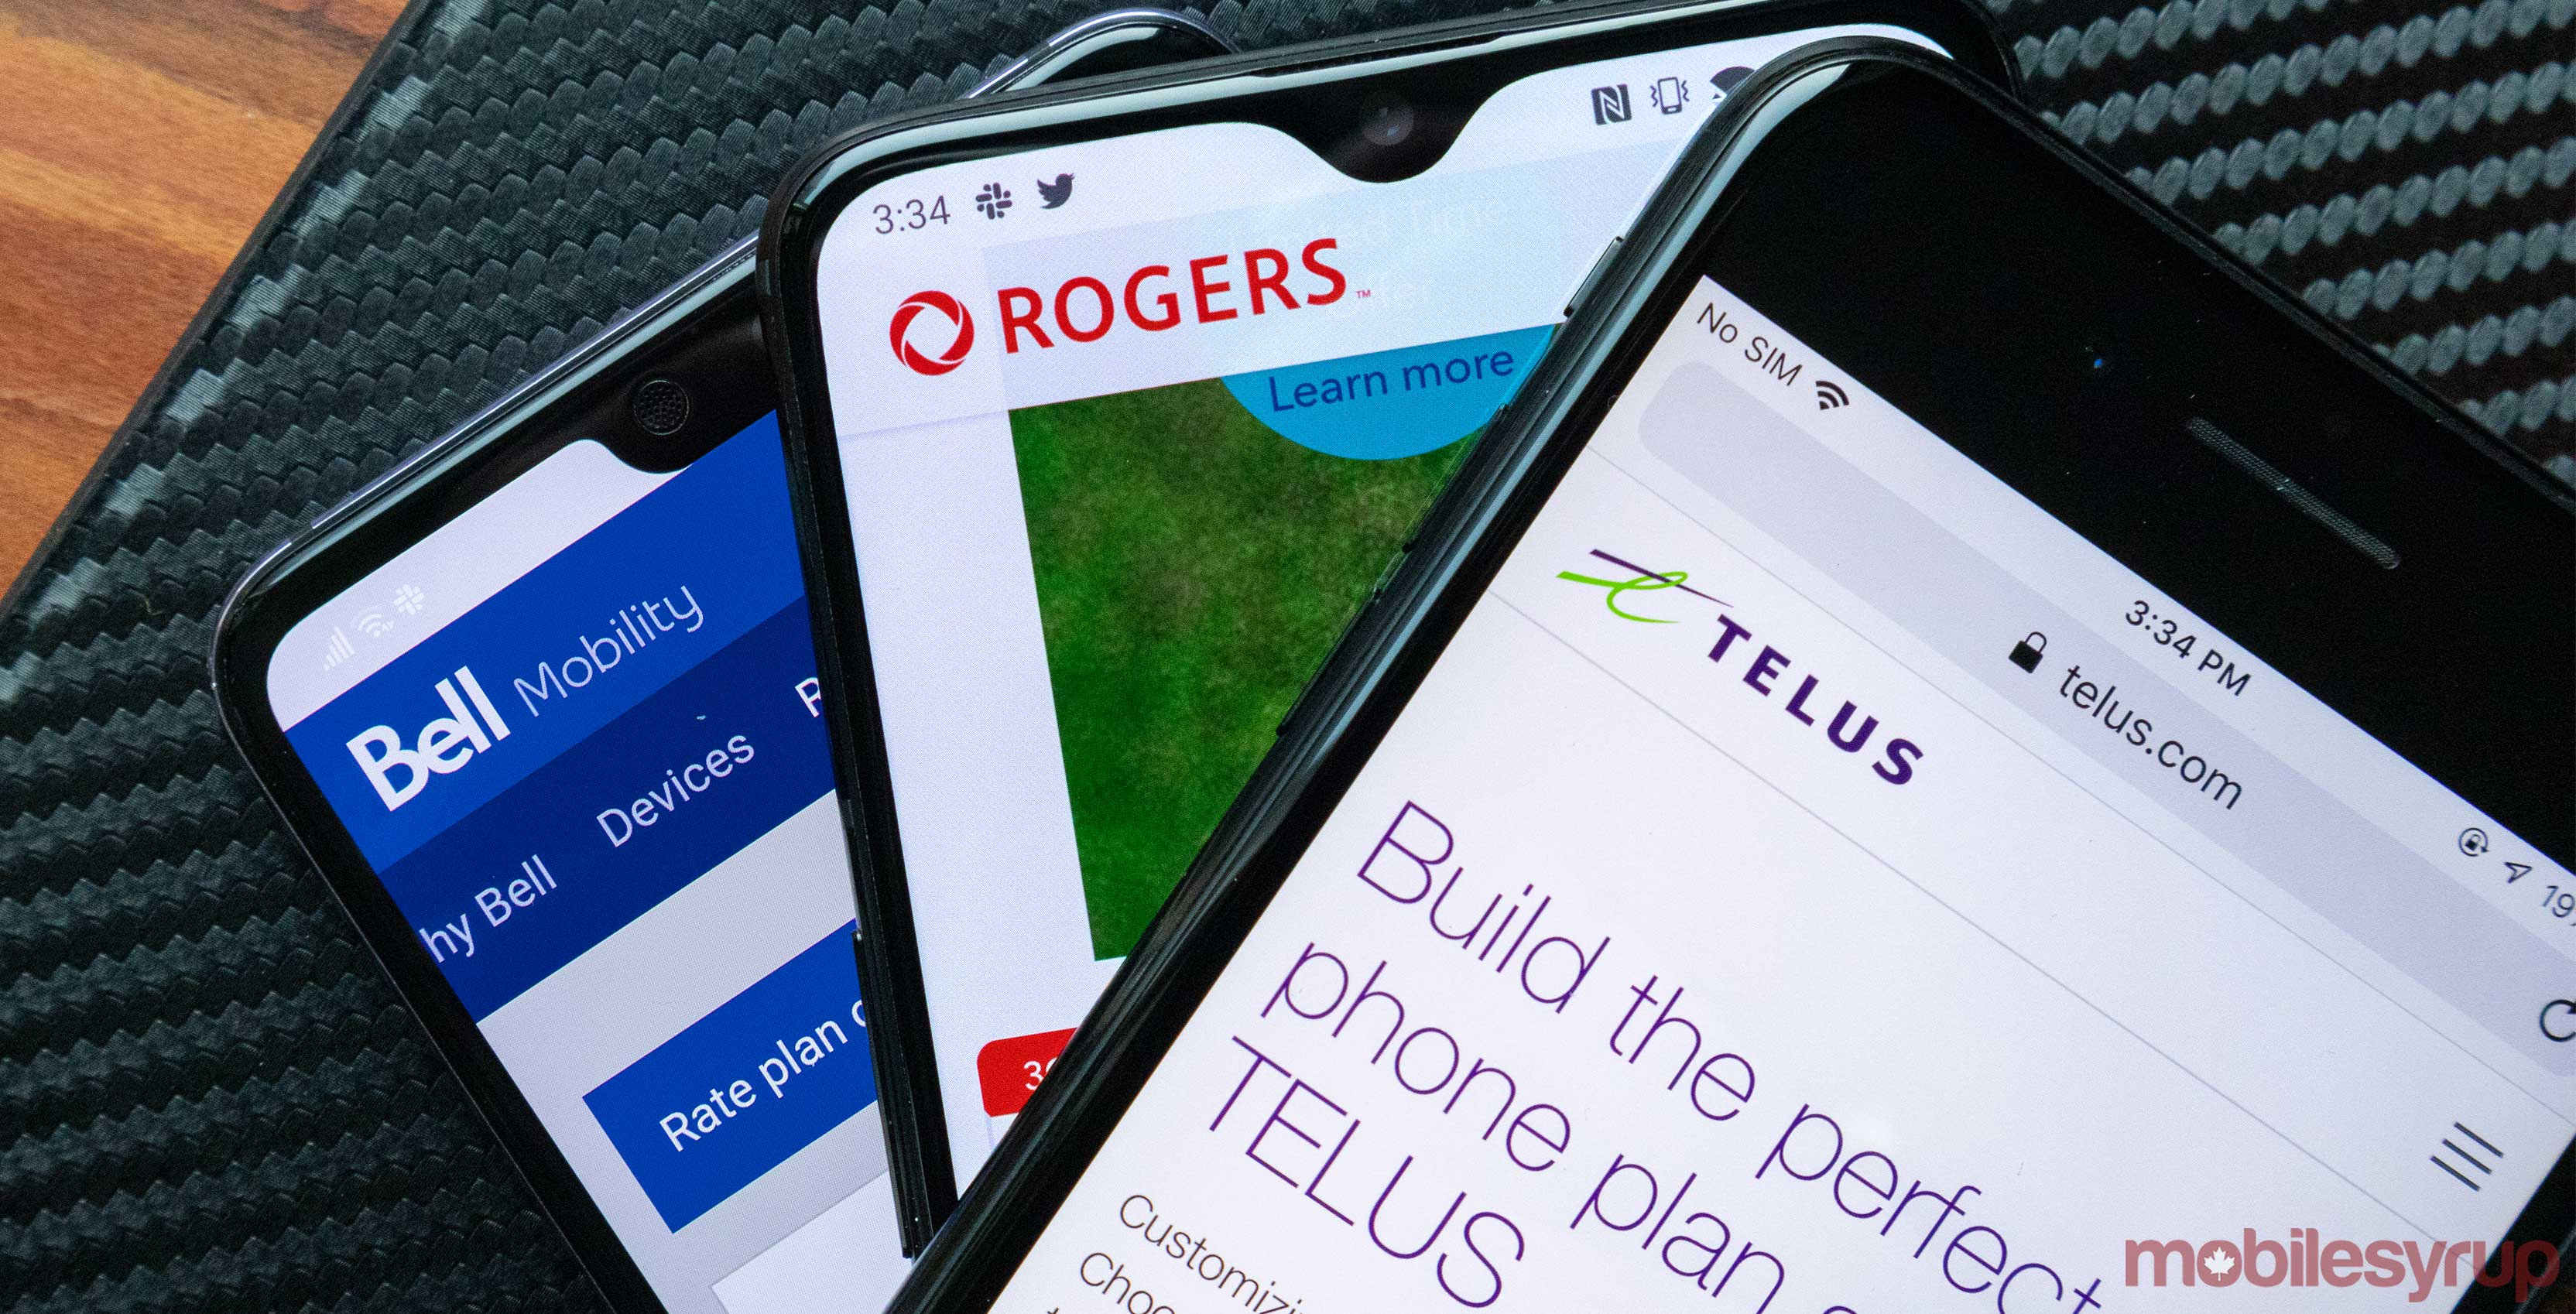 Bell, Telus, Rogers offering 3GB bonus data with most plans